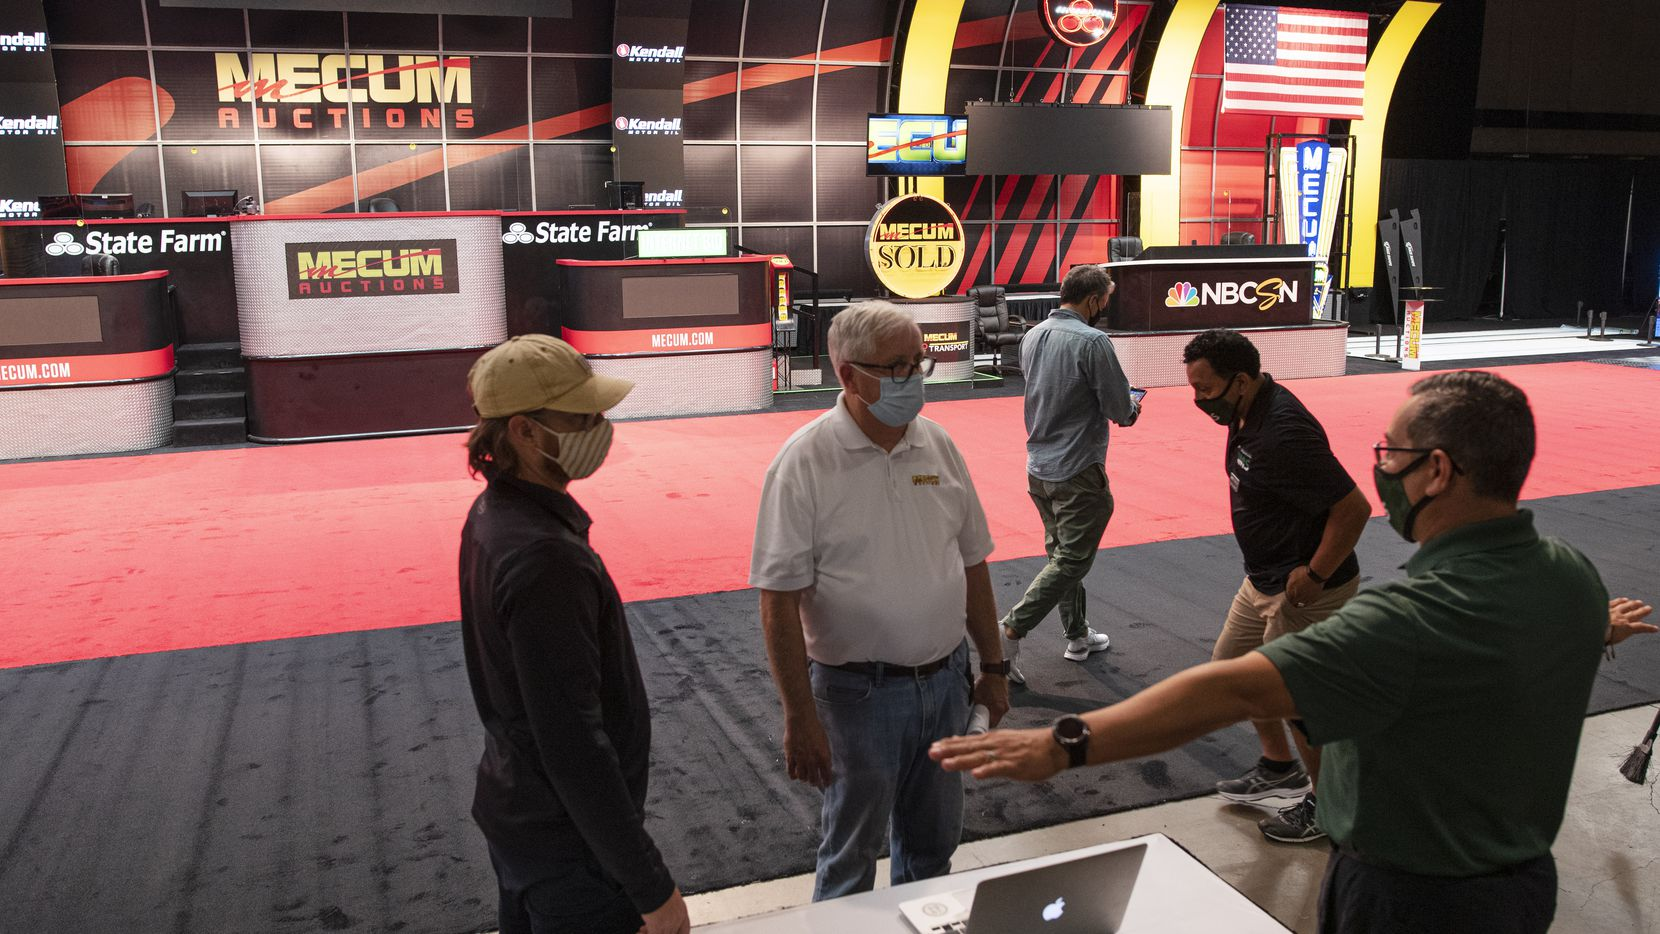 Greg Stone, left, and Hugo Gonzalez, far-right, both of Inclusive Management Services, speak with Harold Gerdes, center, Vice President of operations for Mecum Auto Auction, as they work together to prepare the main stage for the Mecum Auto Auction at the Kay Bailey Hutchison Convention Center in downtown Dallas, Oct. 13, 2020.